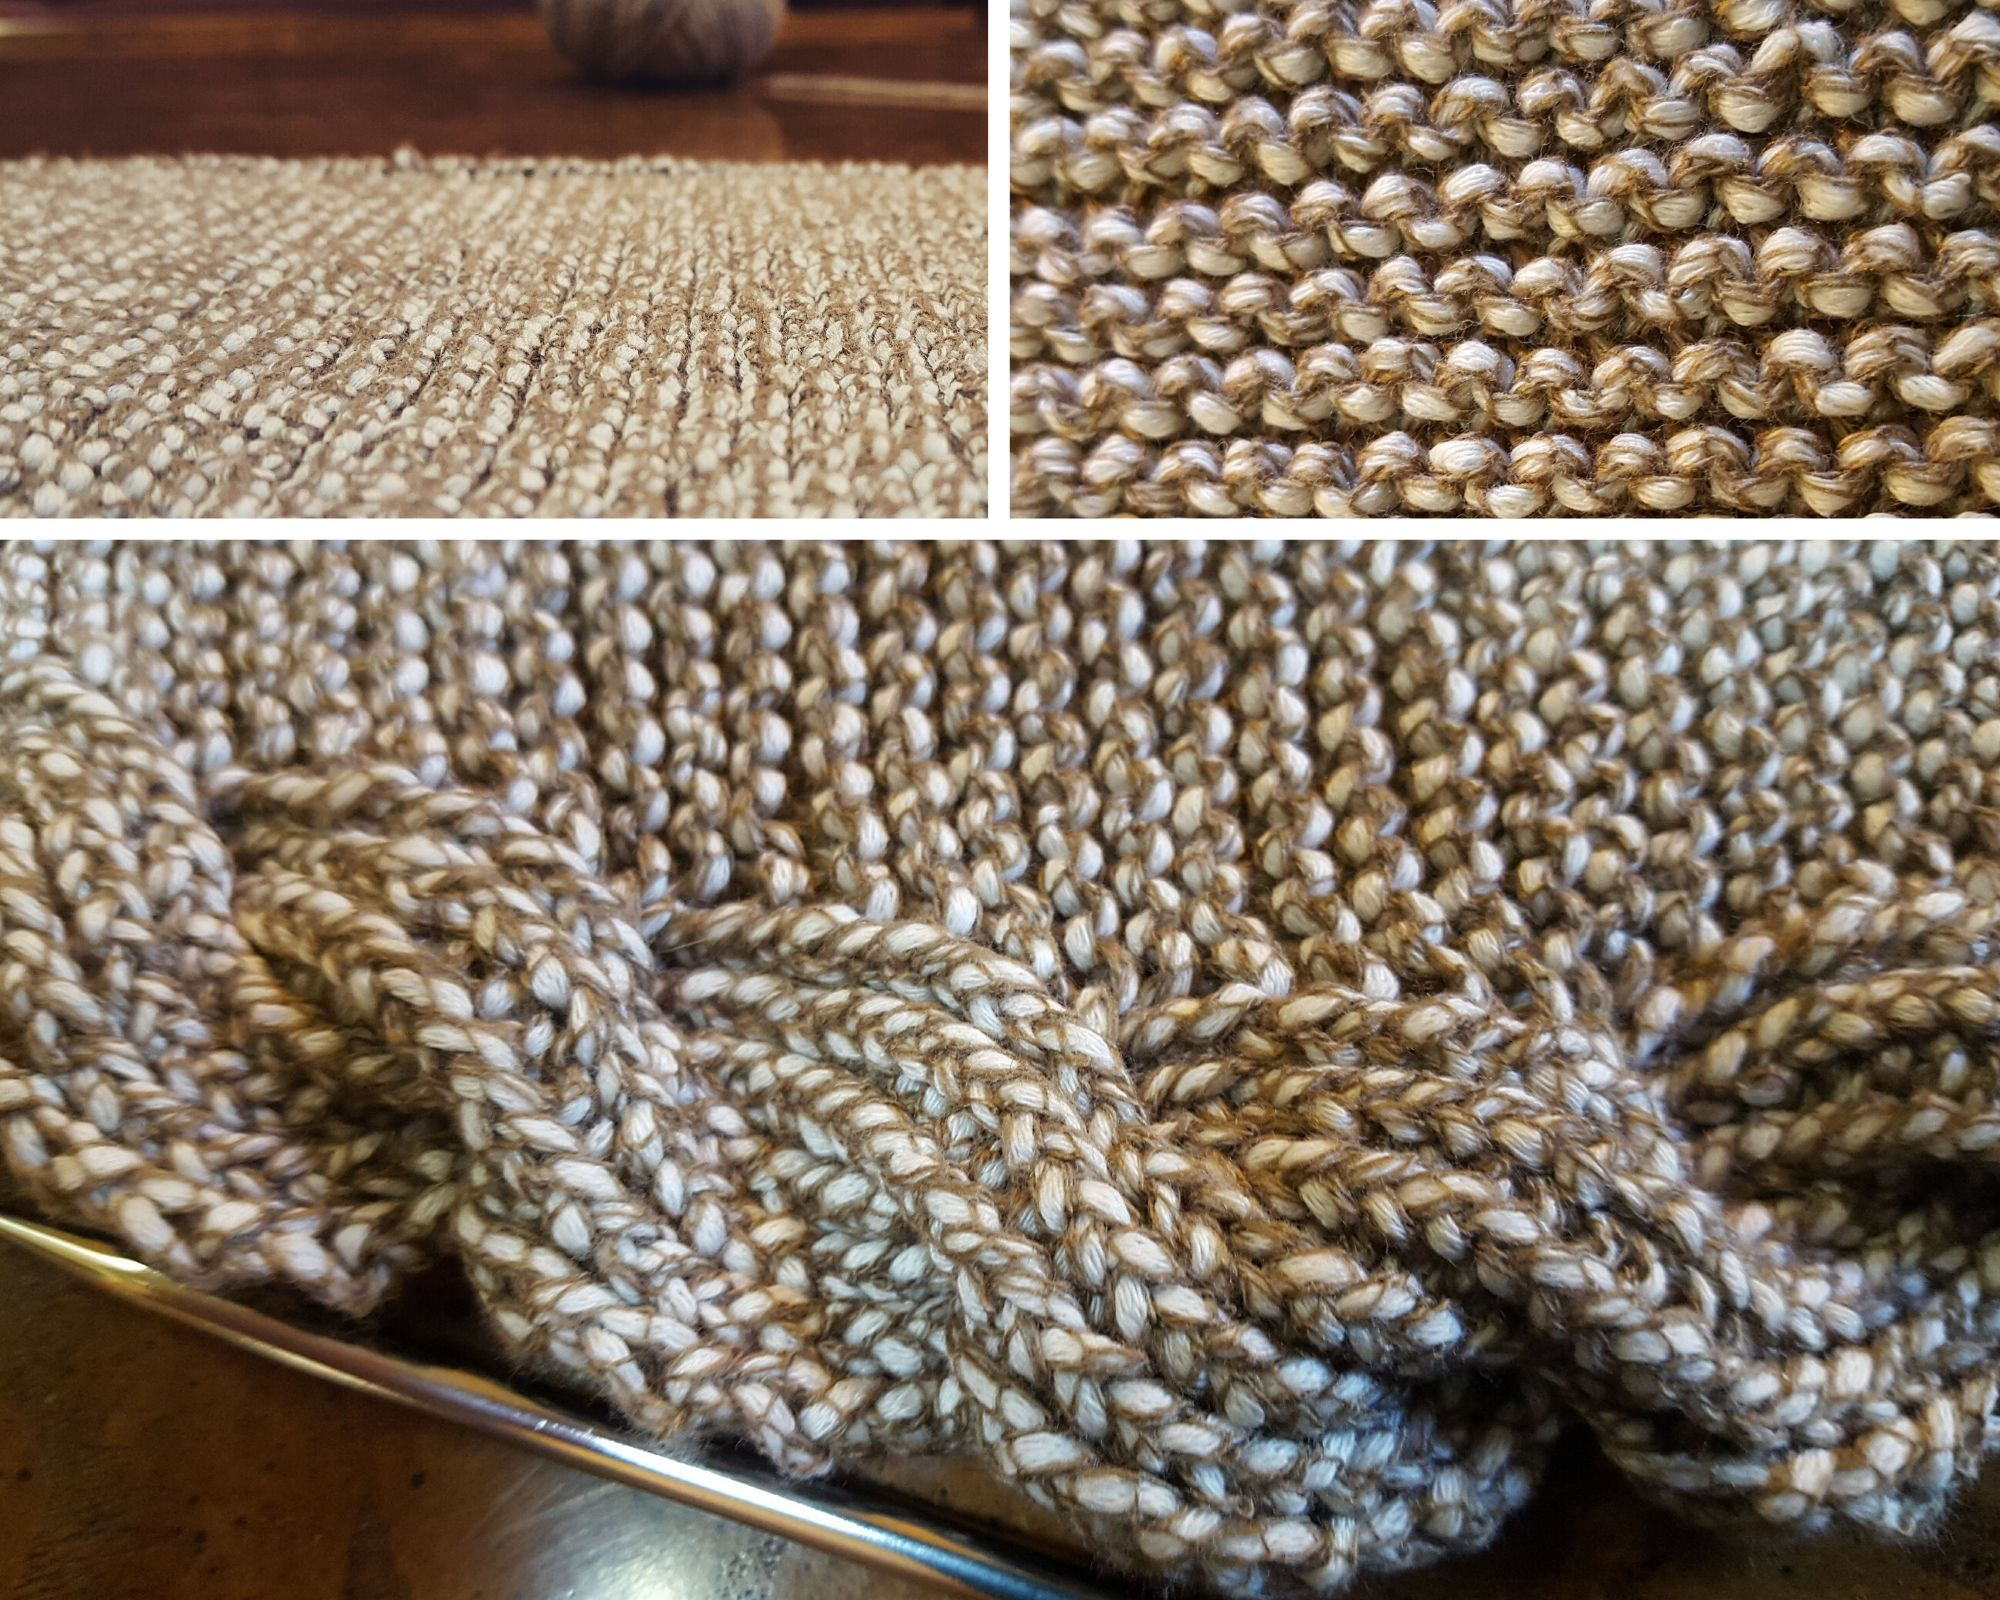 Mosaic of images showing up-close details of the knitted shawl